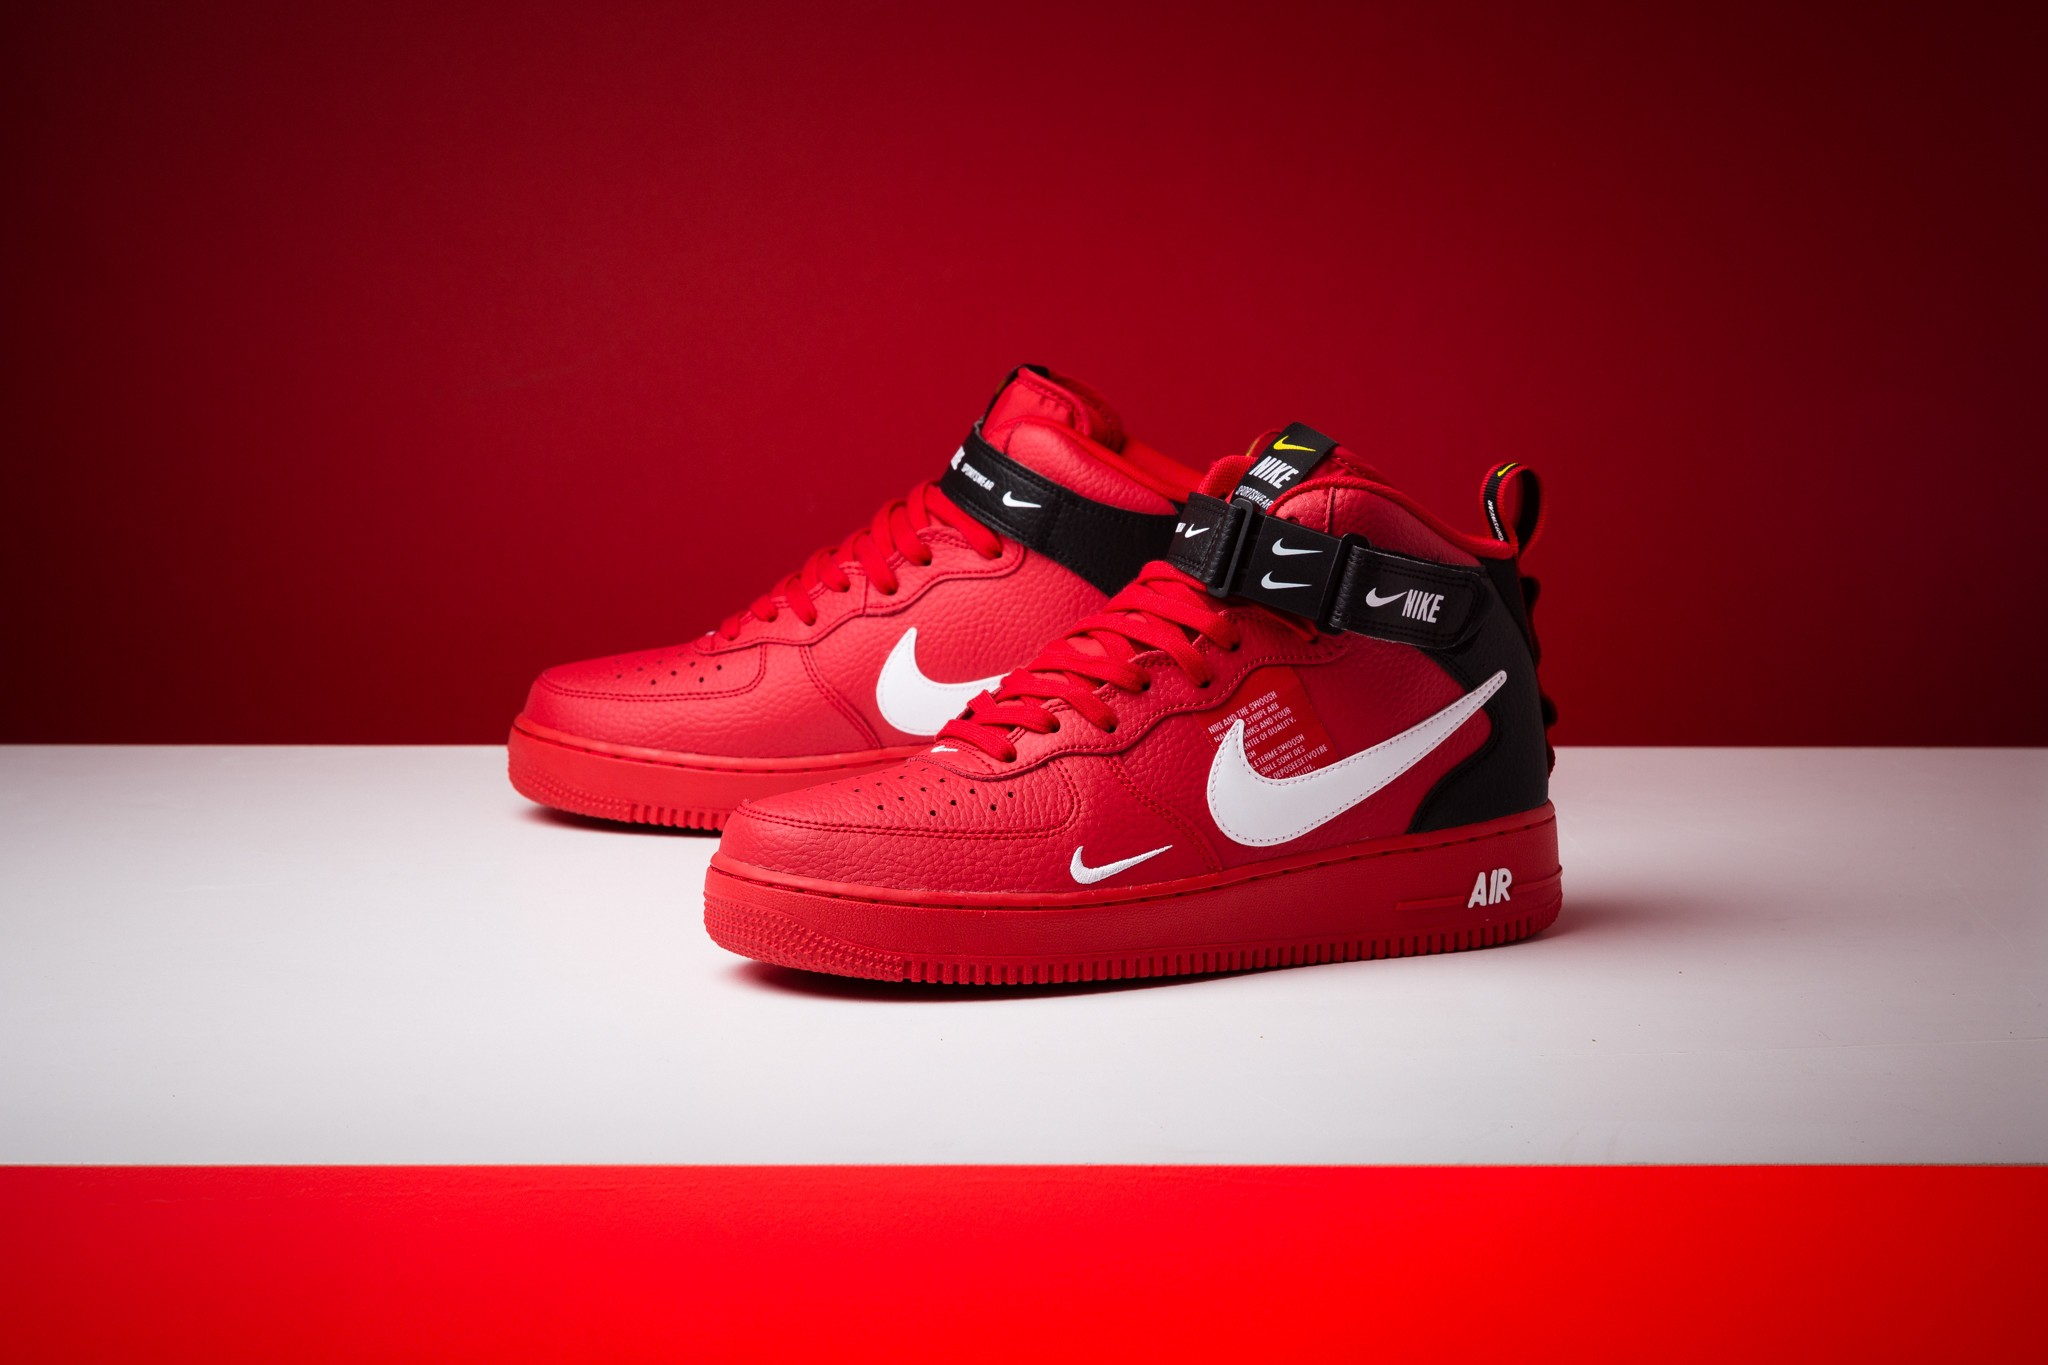 pretty nice 360b8 84735 NIKE® AIR FORCE 1® MID 07 LV8 - Supreme Team Red